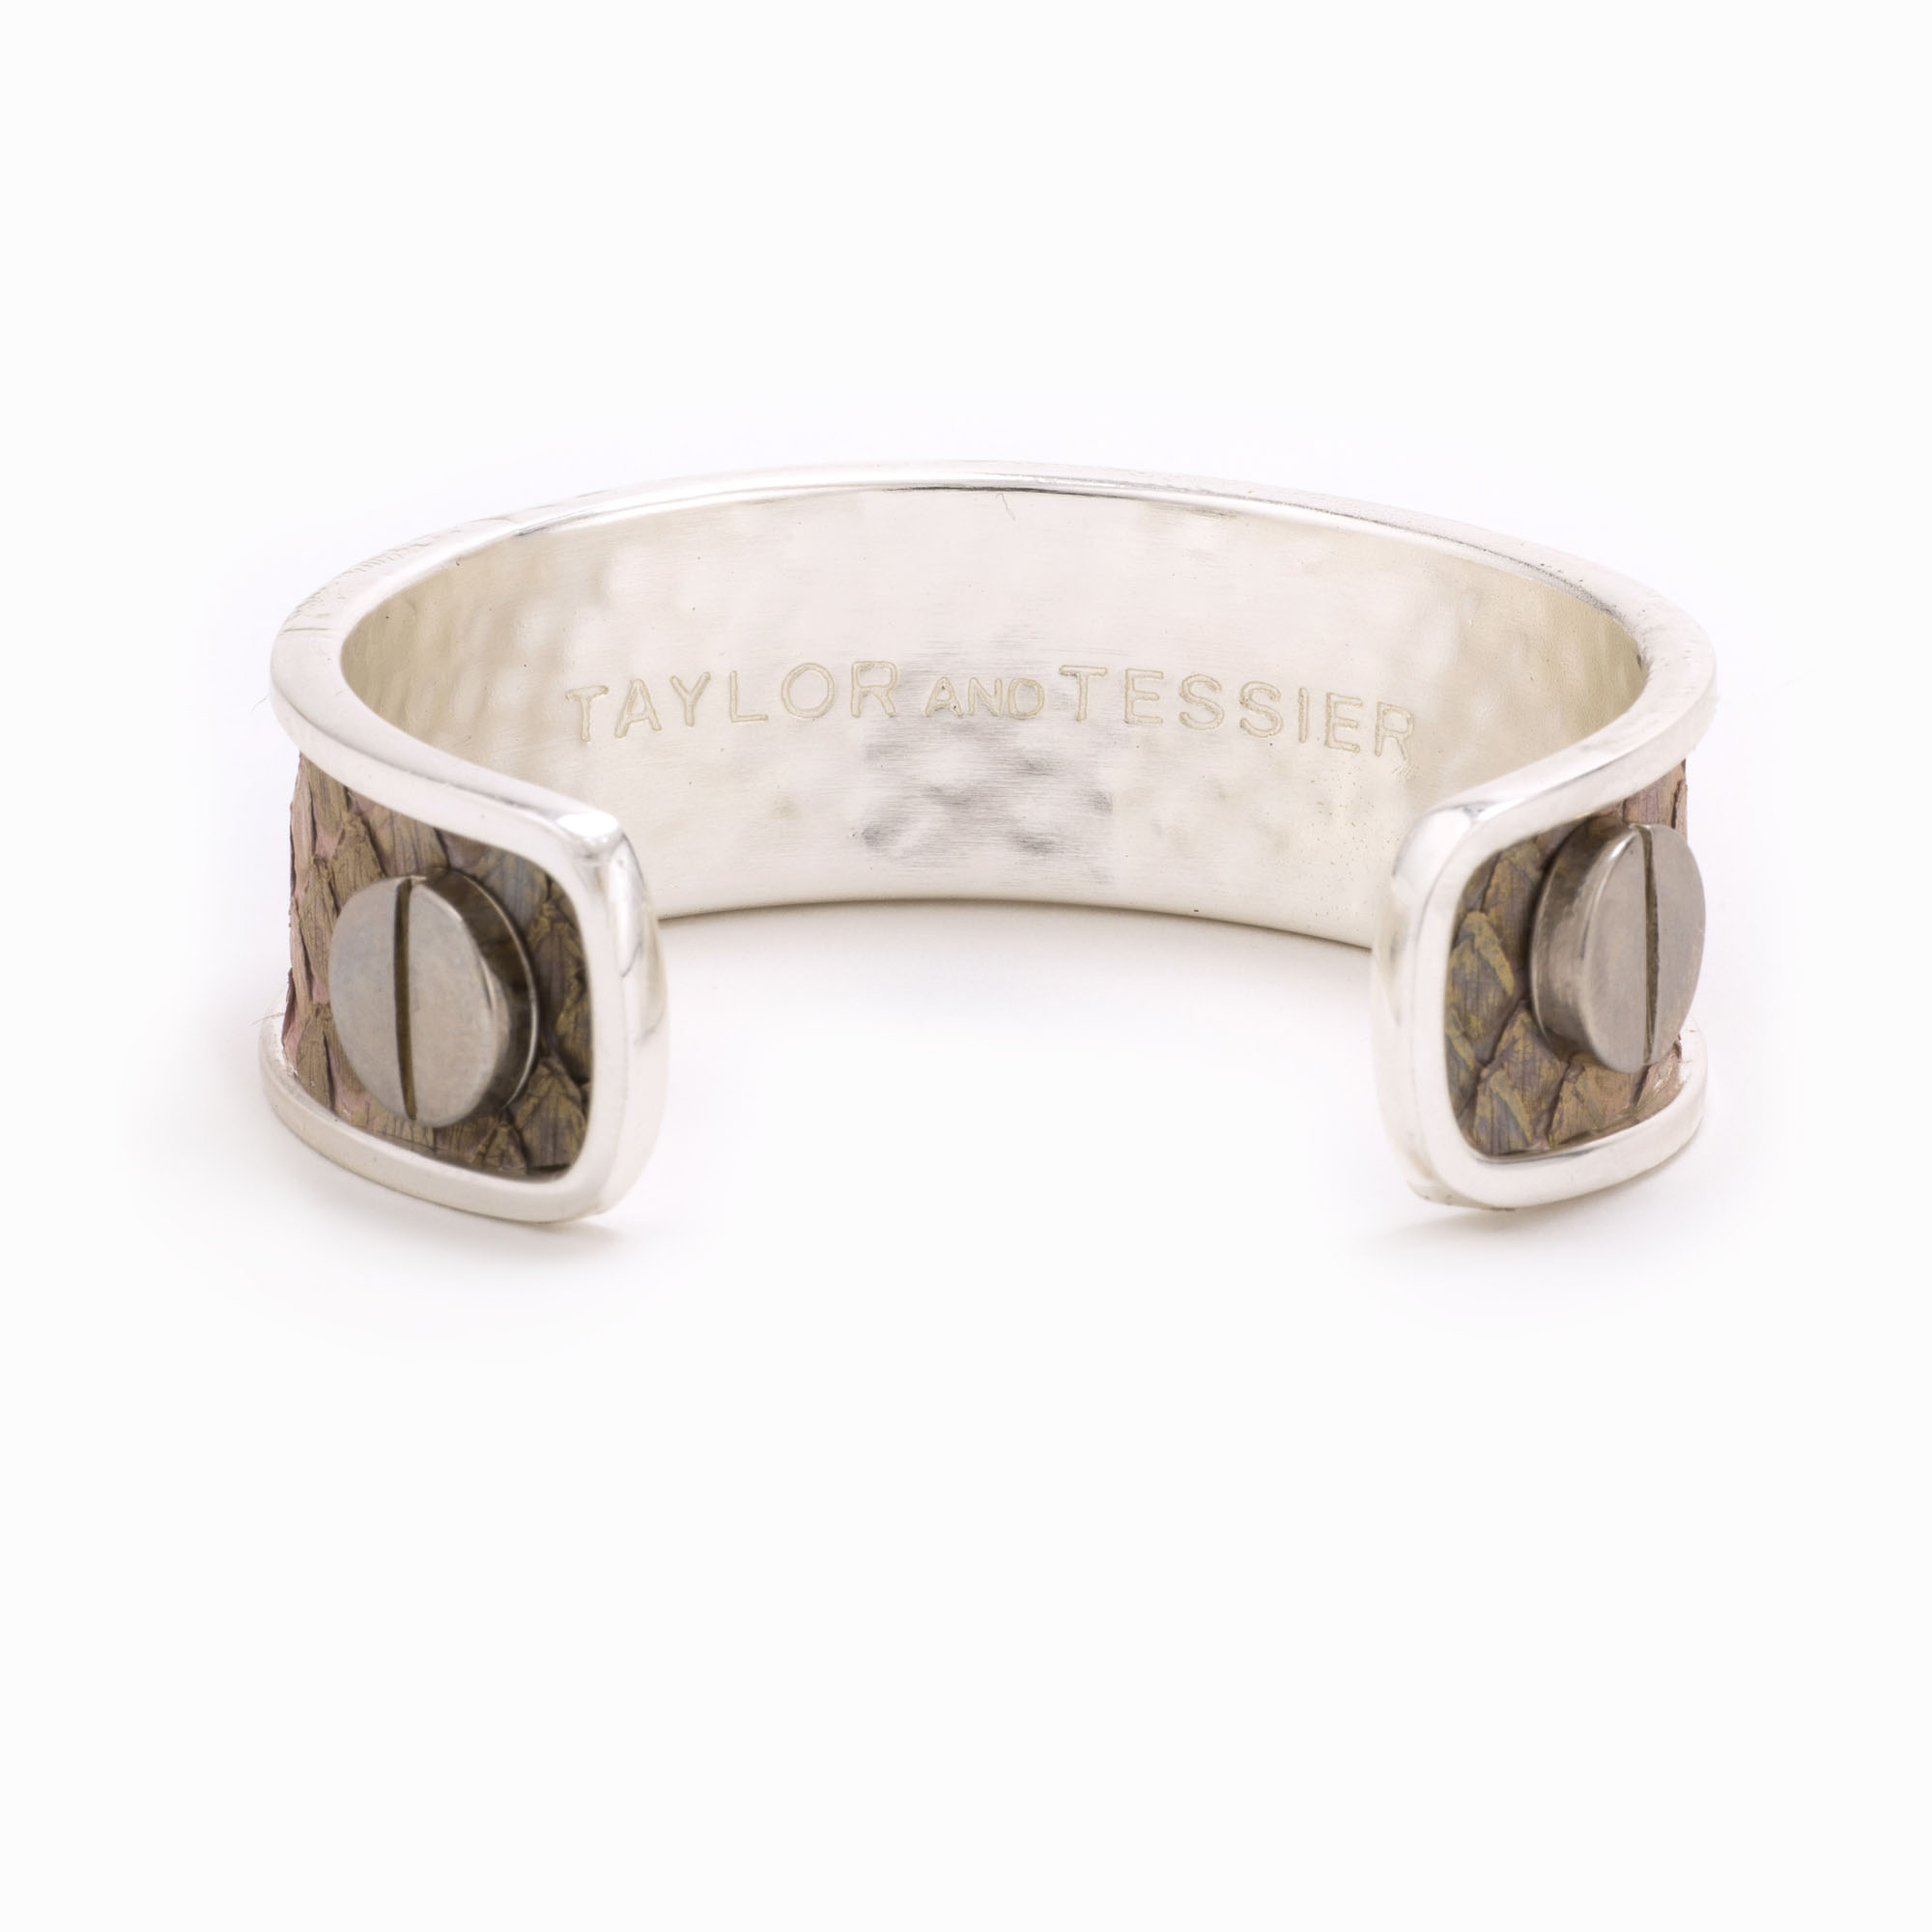 A medium silver cuff with white colored snakeskin pattern inlaid.